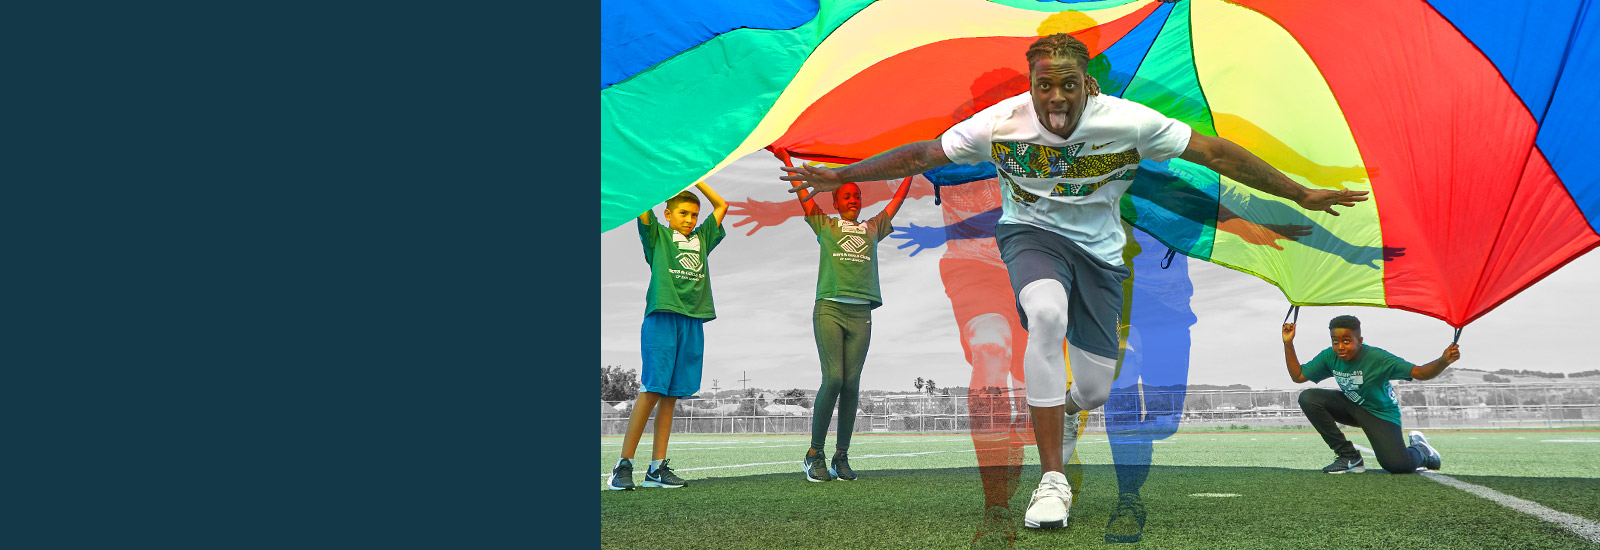 Davante running under colorful parachute